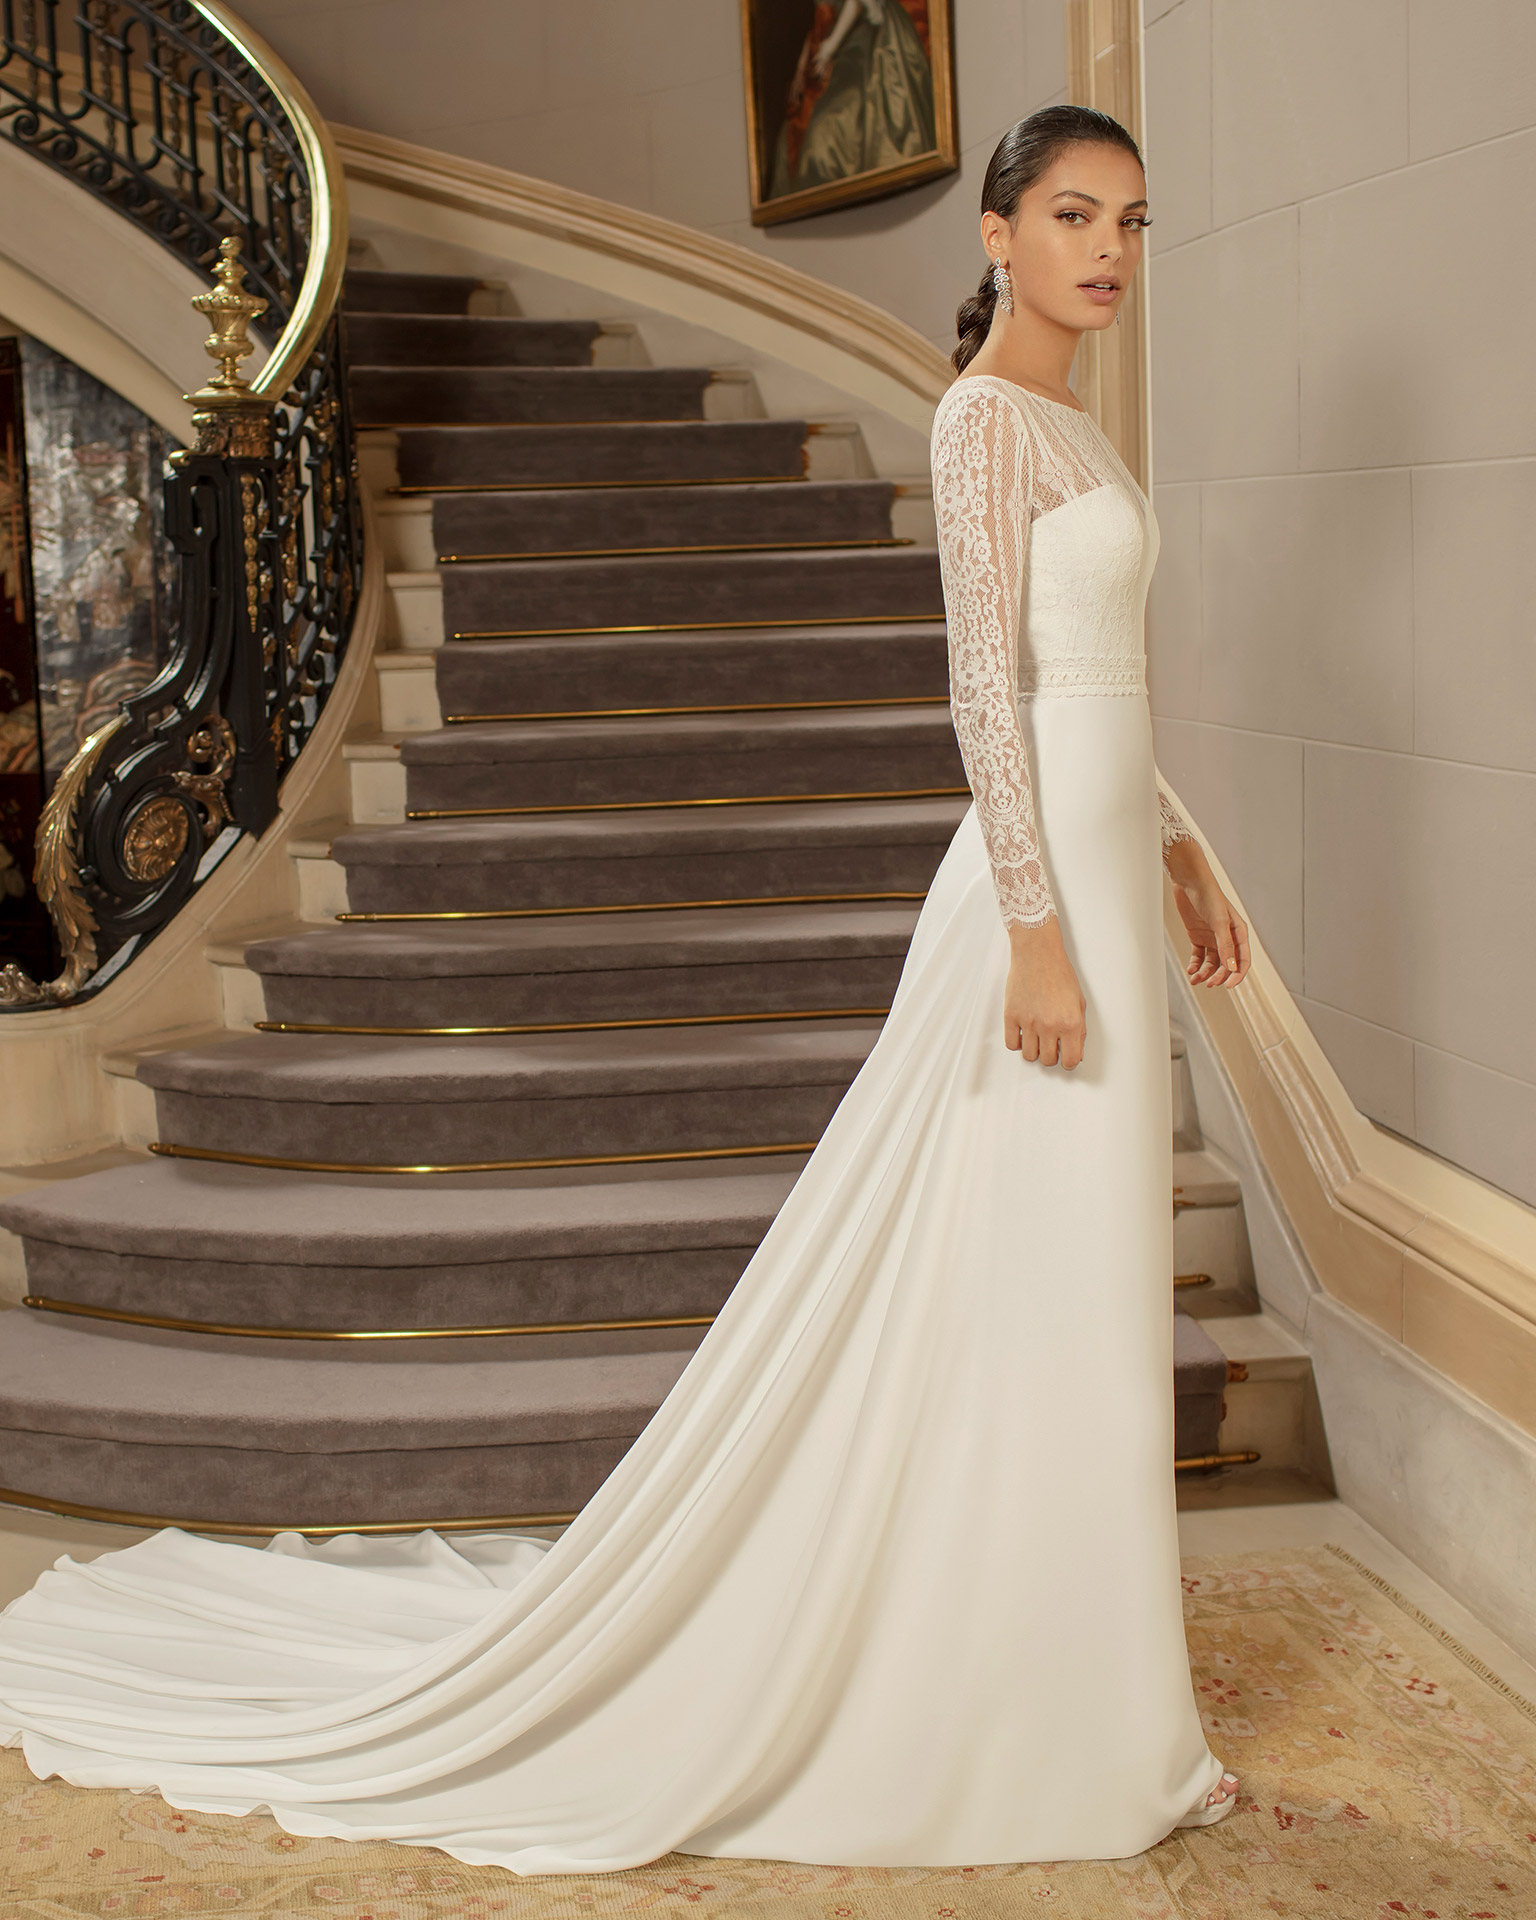 Elegant crepe wedding dress with body-shaping lining and lace with sweetheart neckline, closed back and long sleeves. 2020 ALMANOVIA Collection.